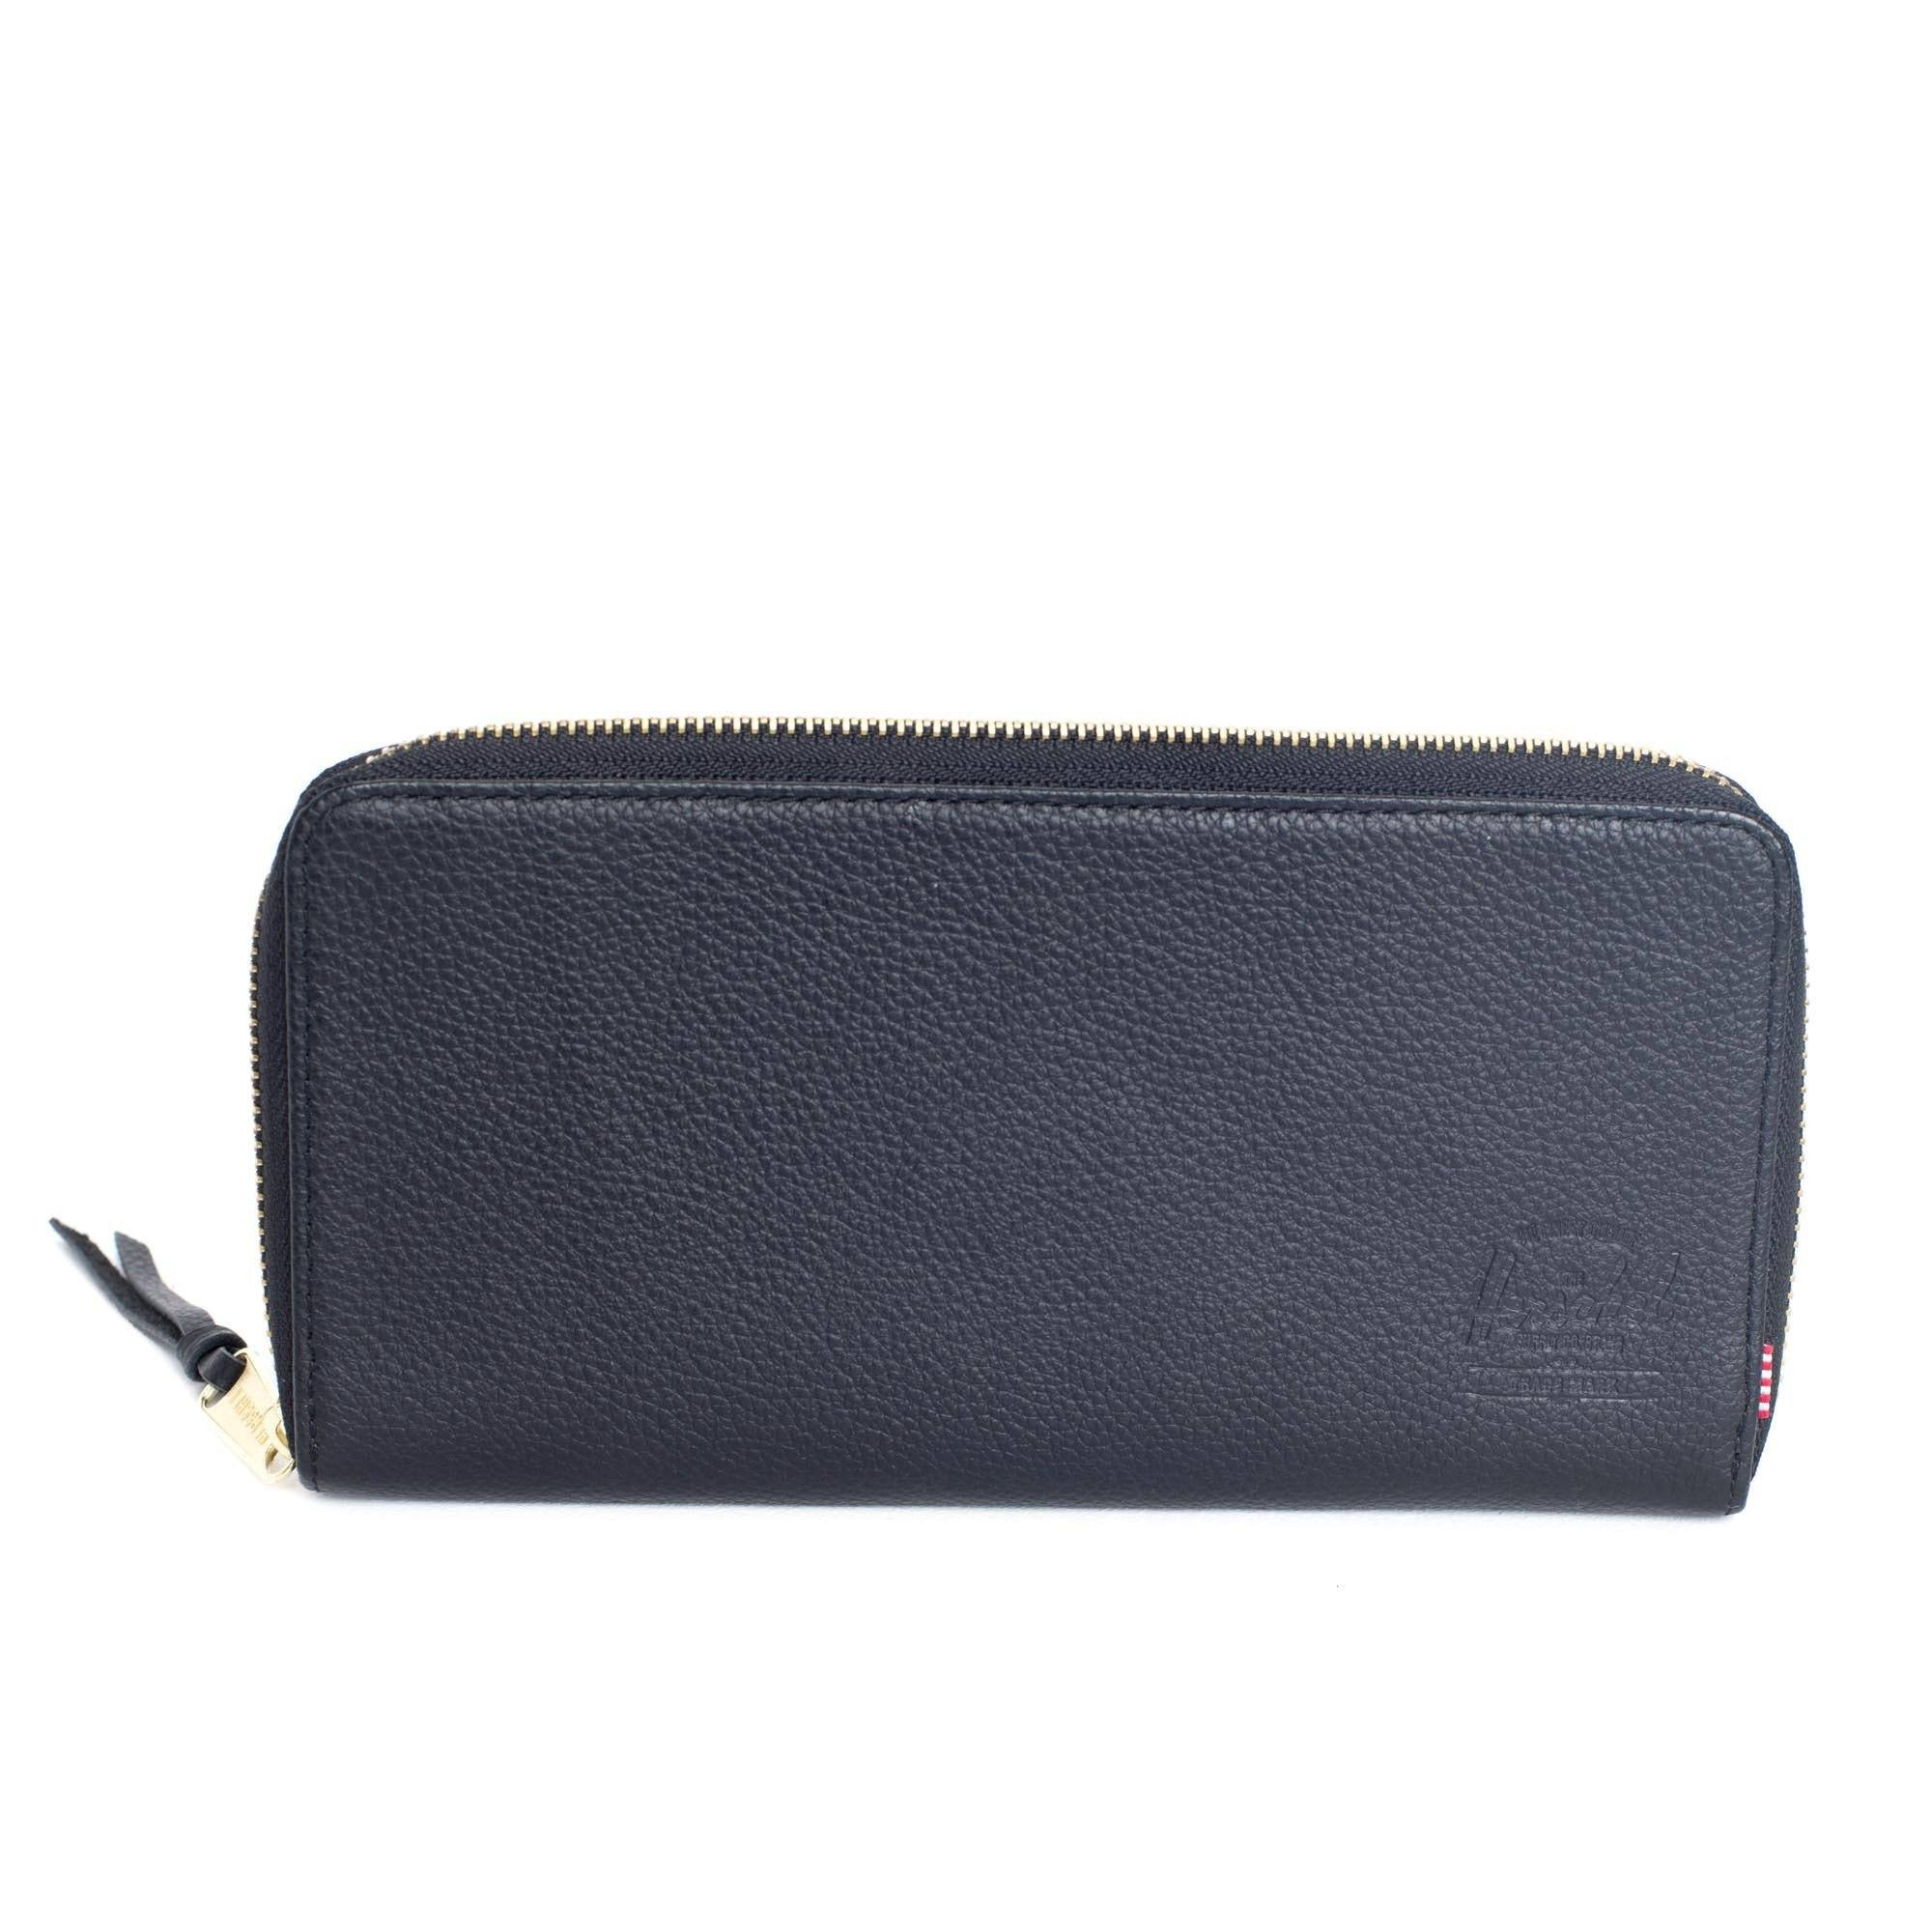 Herschel Supply Co. Avenue Leather Wallet - Black